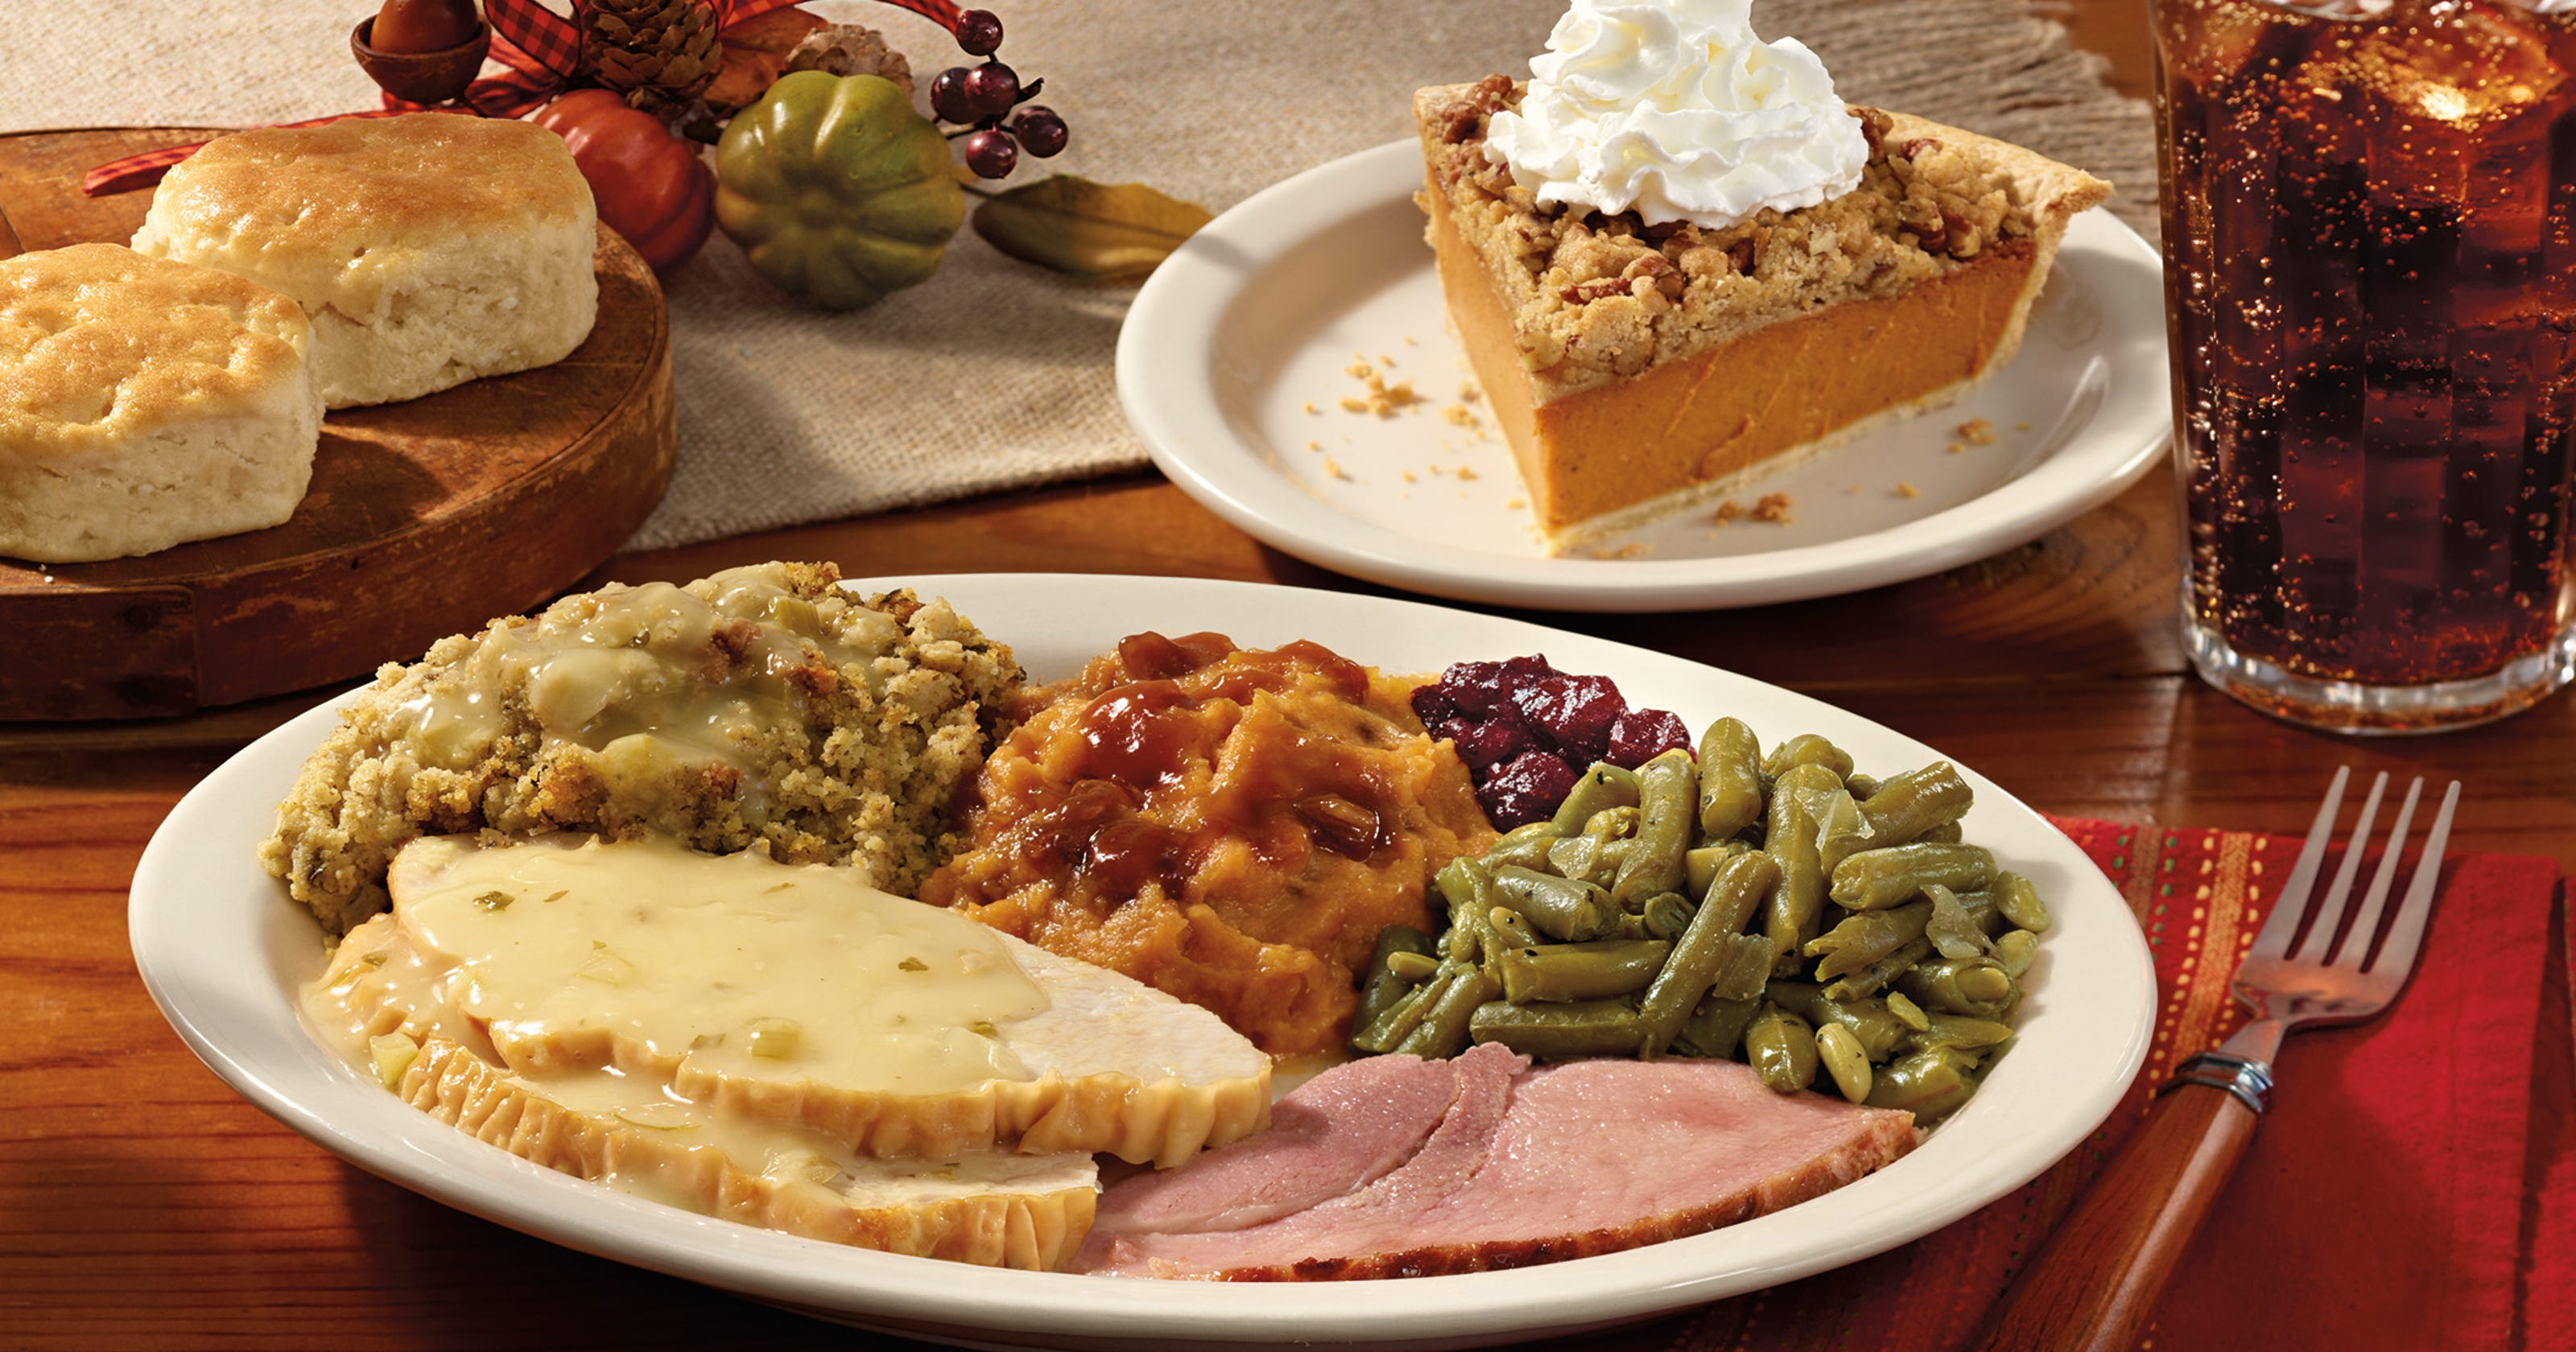 18 restaurants open thanksgiving day 2016 - Is Golden Corral Open On Christmas Day 2014